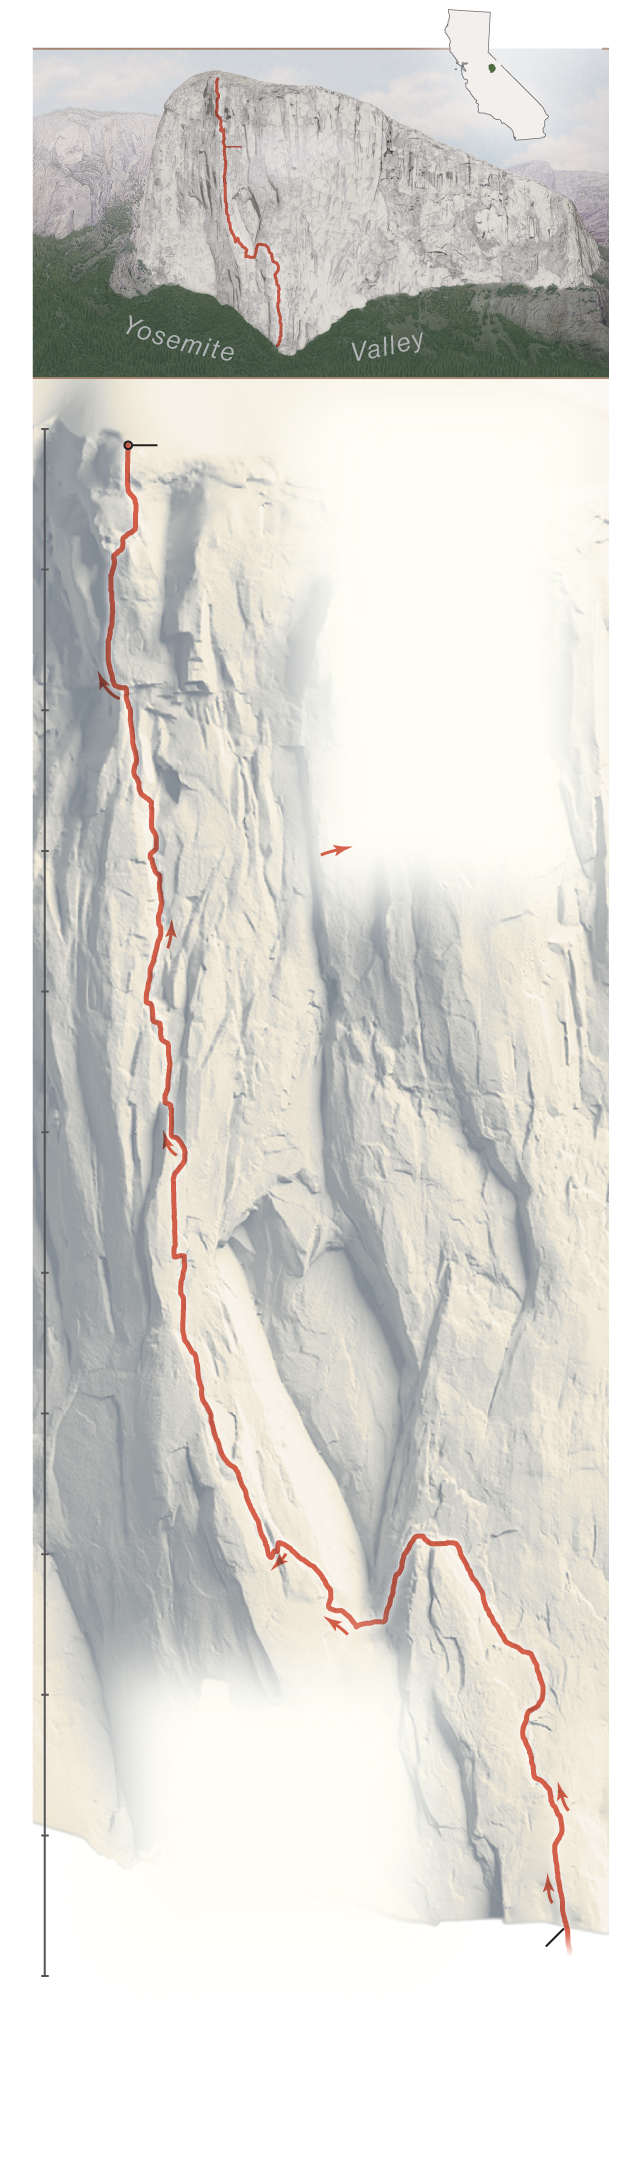 what route did alex honnold take